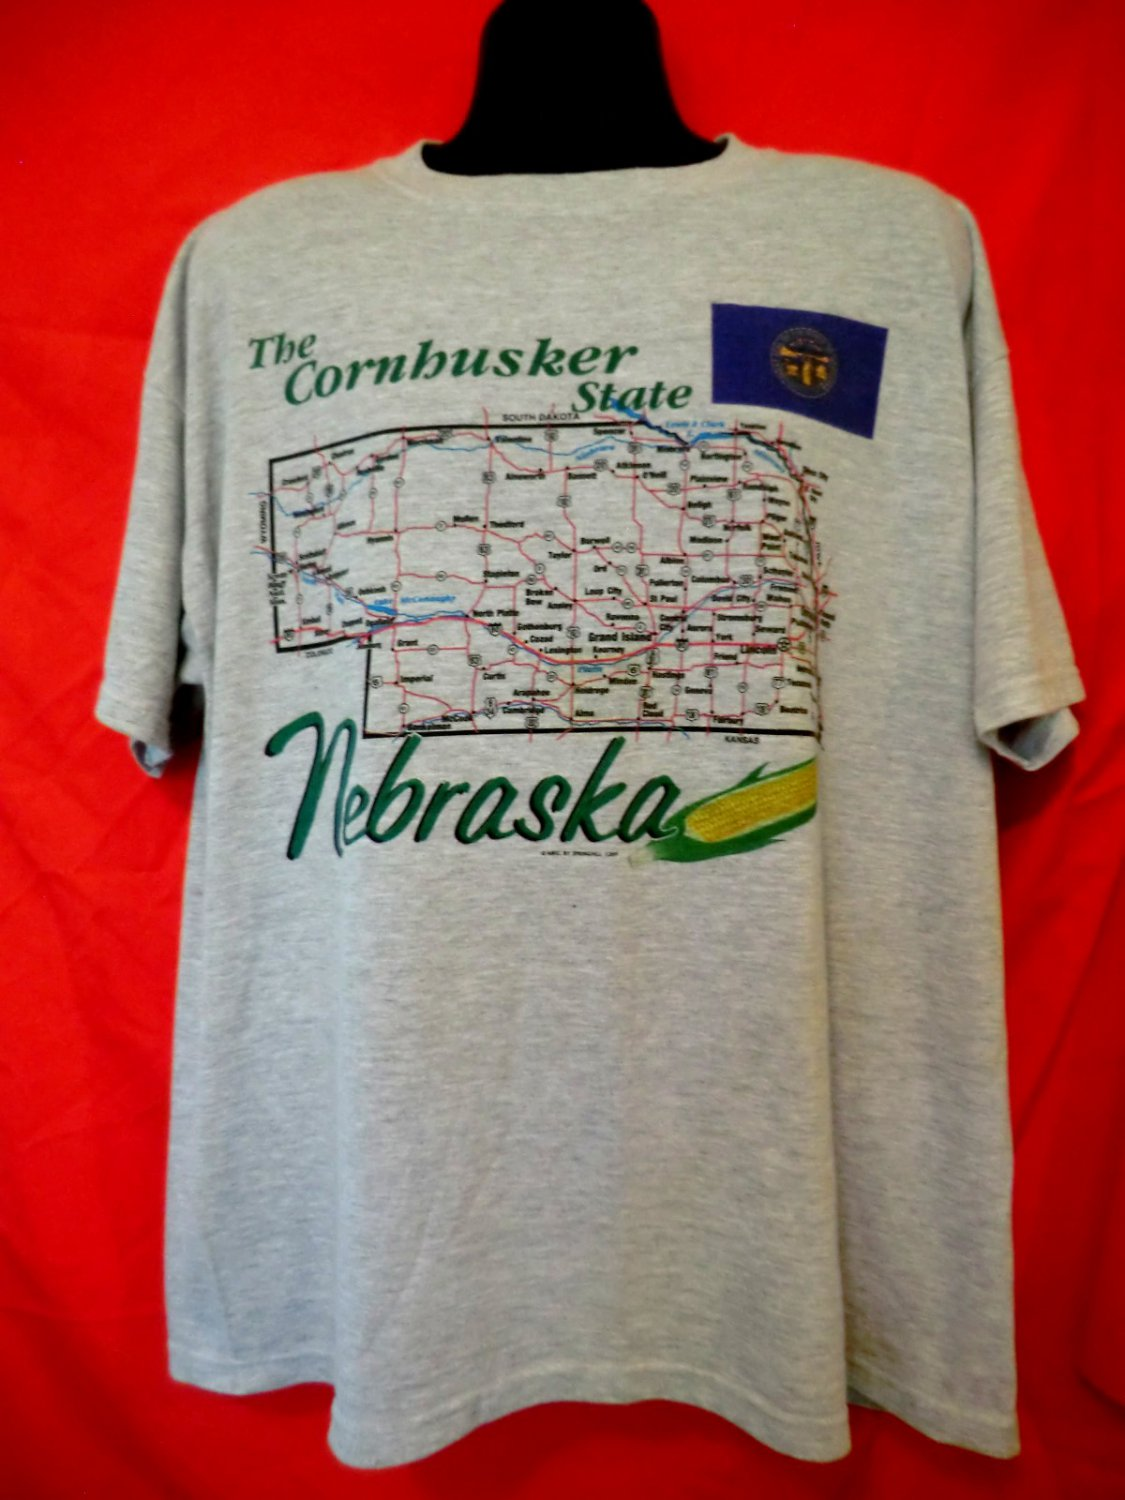 SOLD! The Cornhusker State NEBRASKA T-Shirt Size XXL